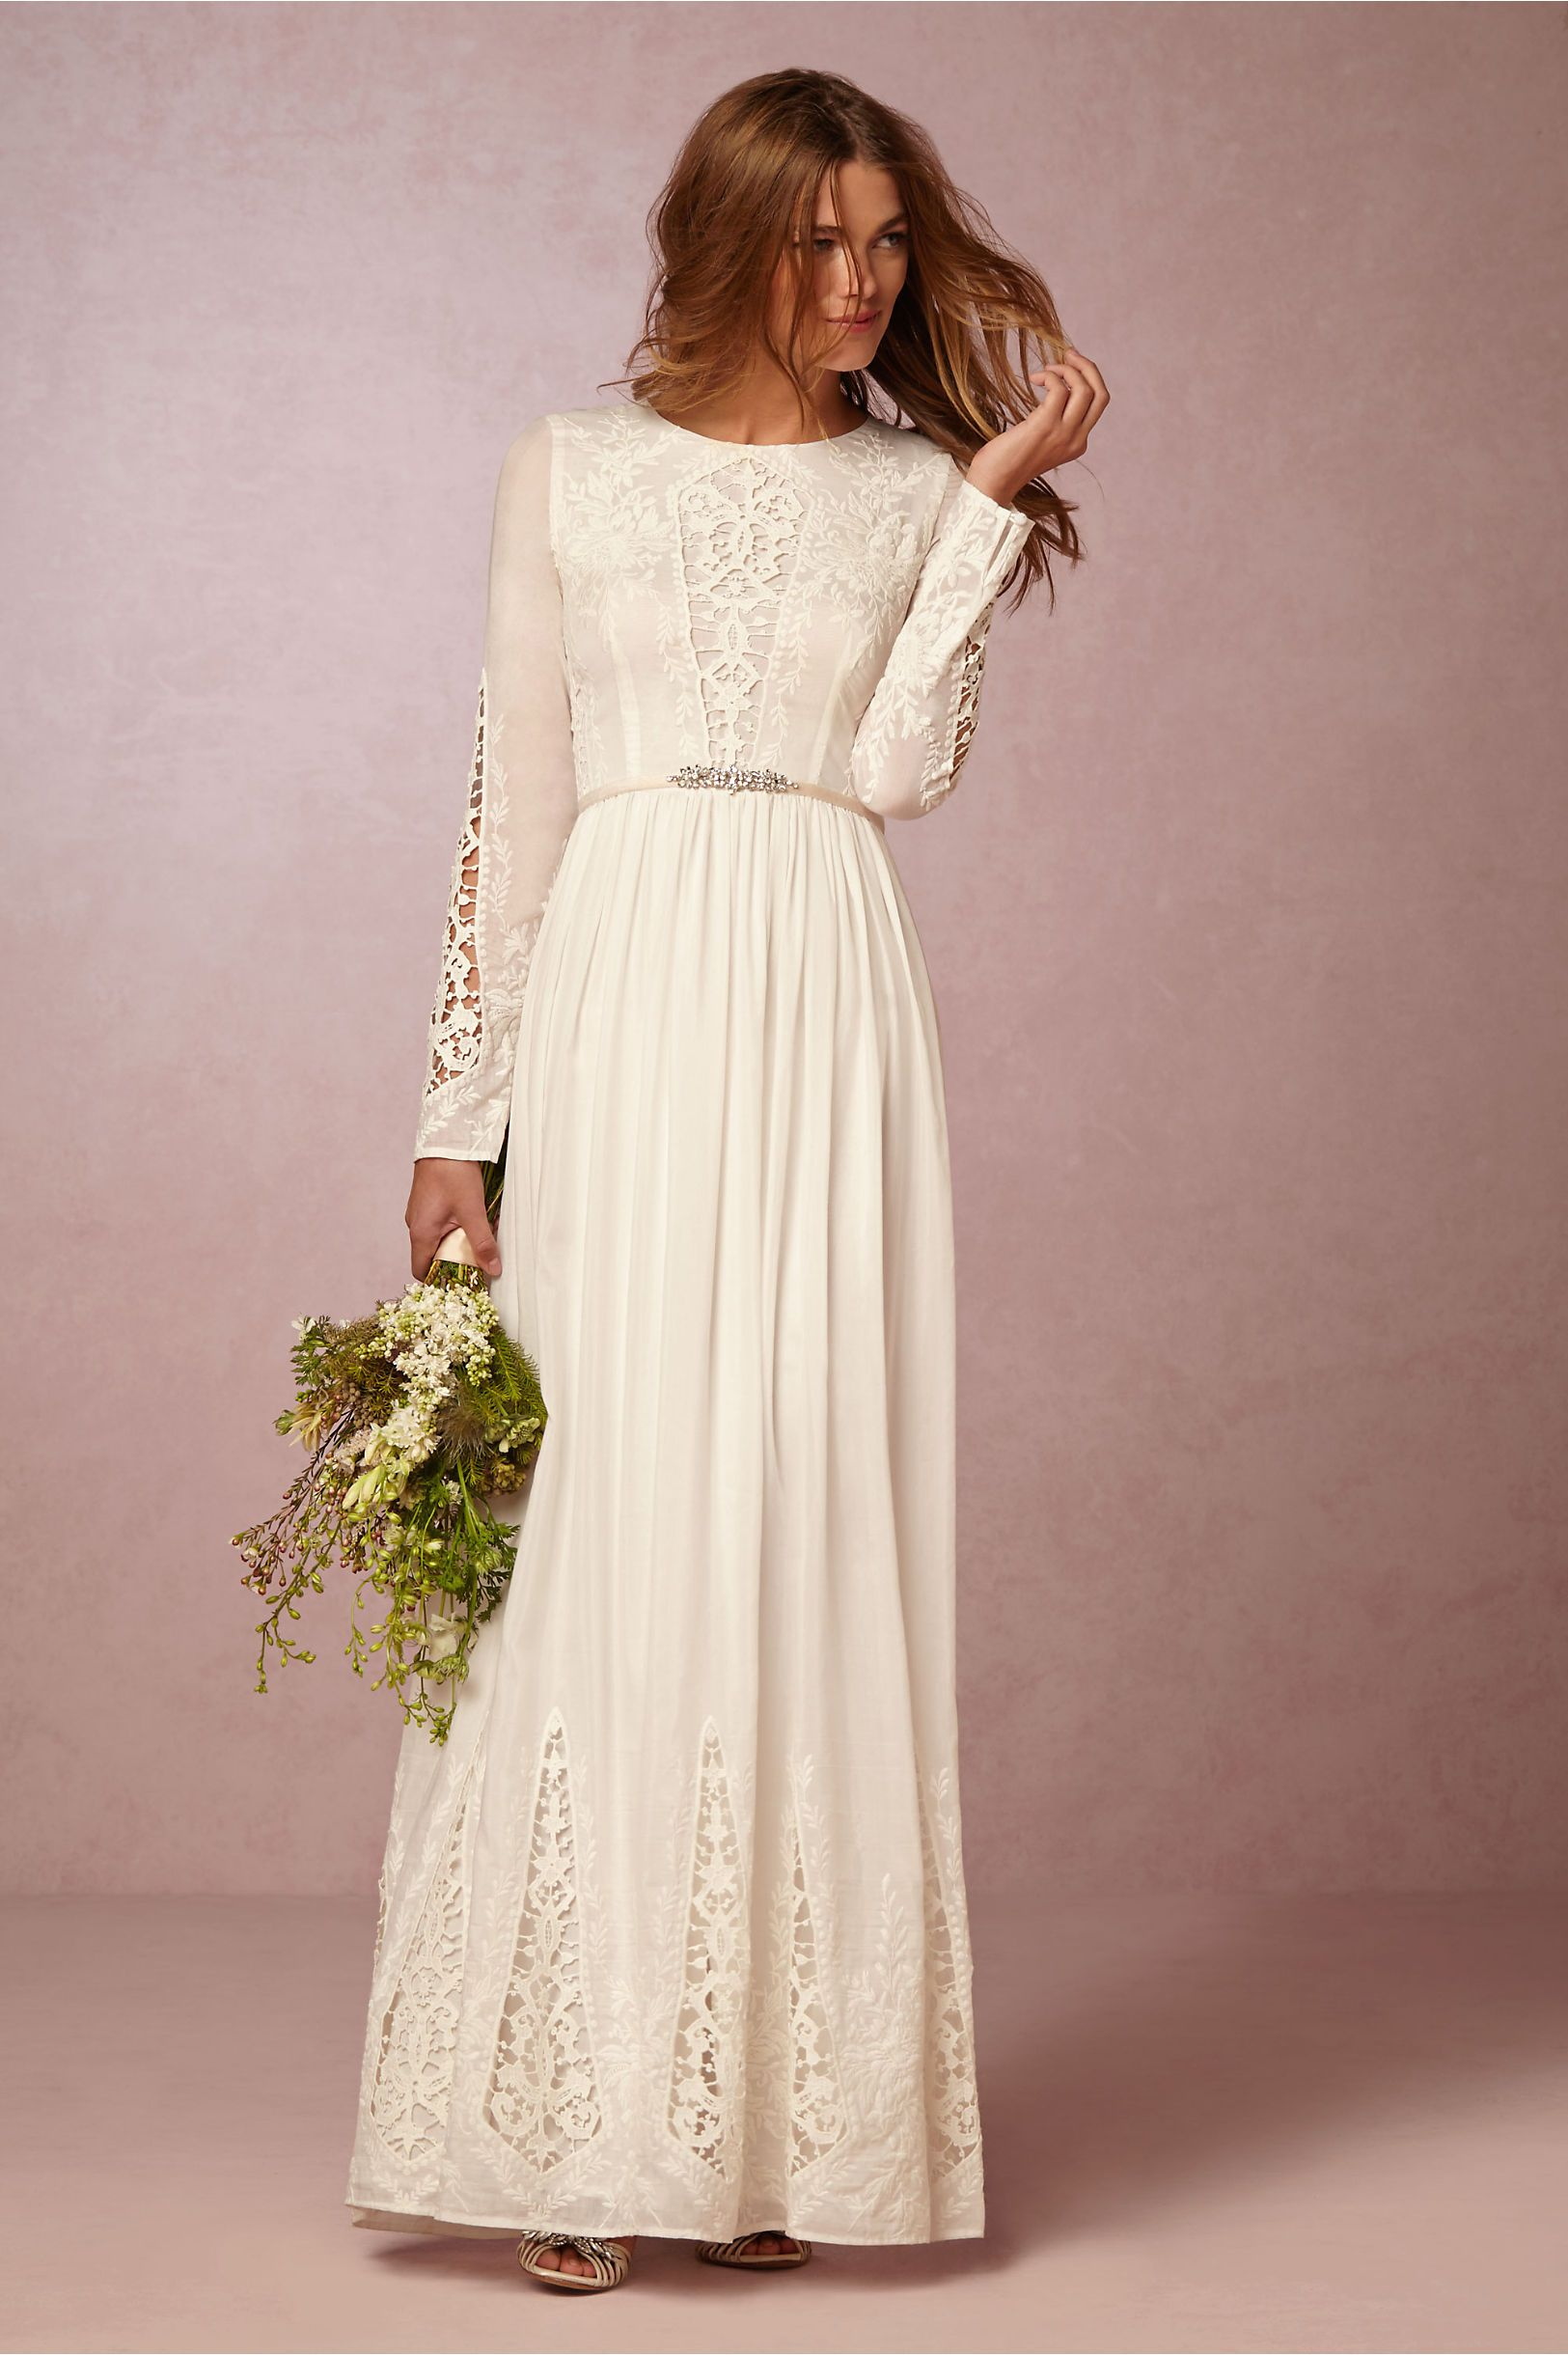 Long Sleeve Bohemian Wedding Dress Mckenna Day From Bhldn